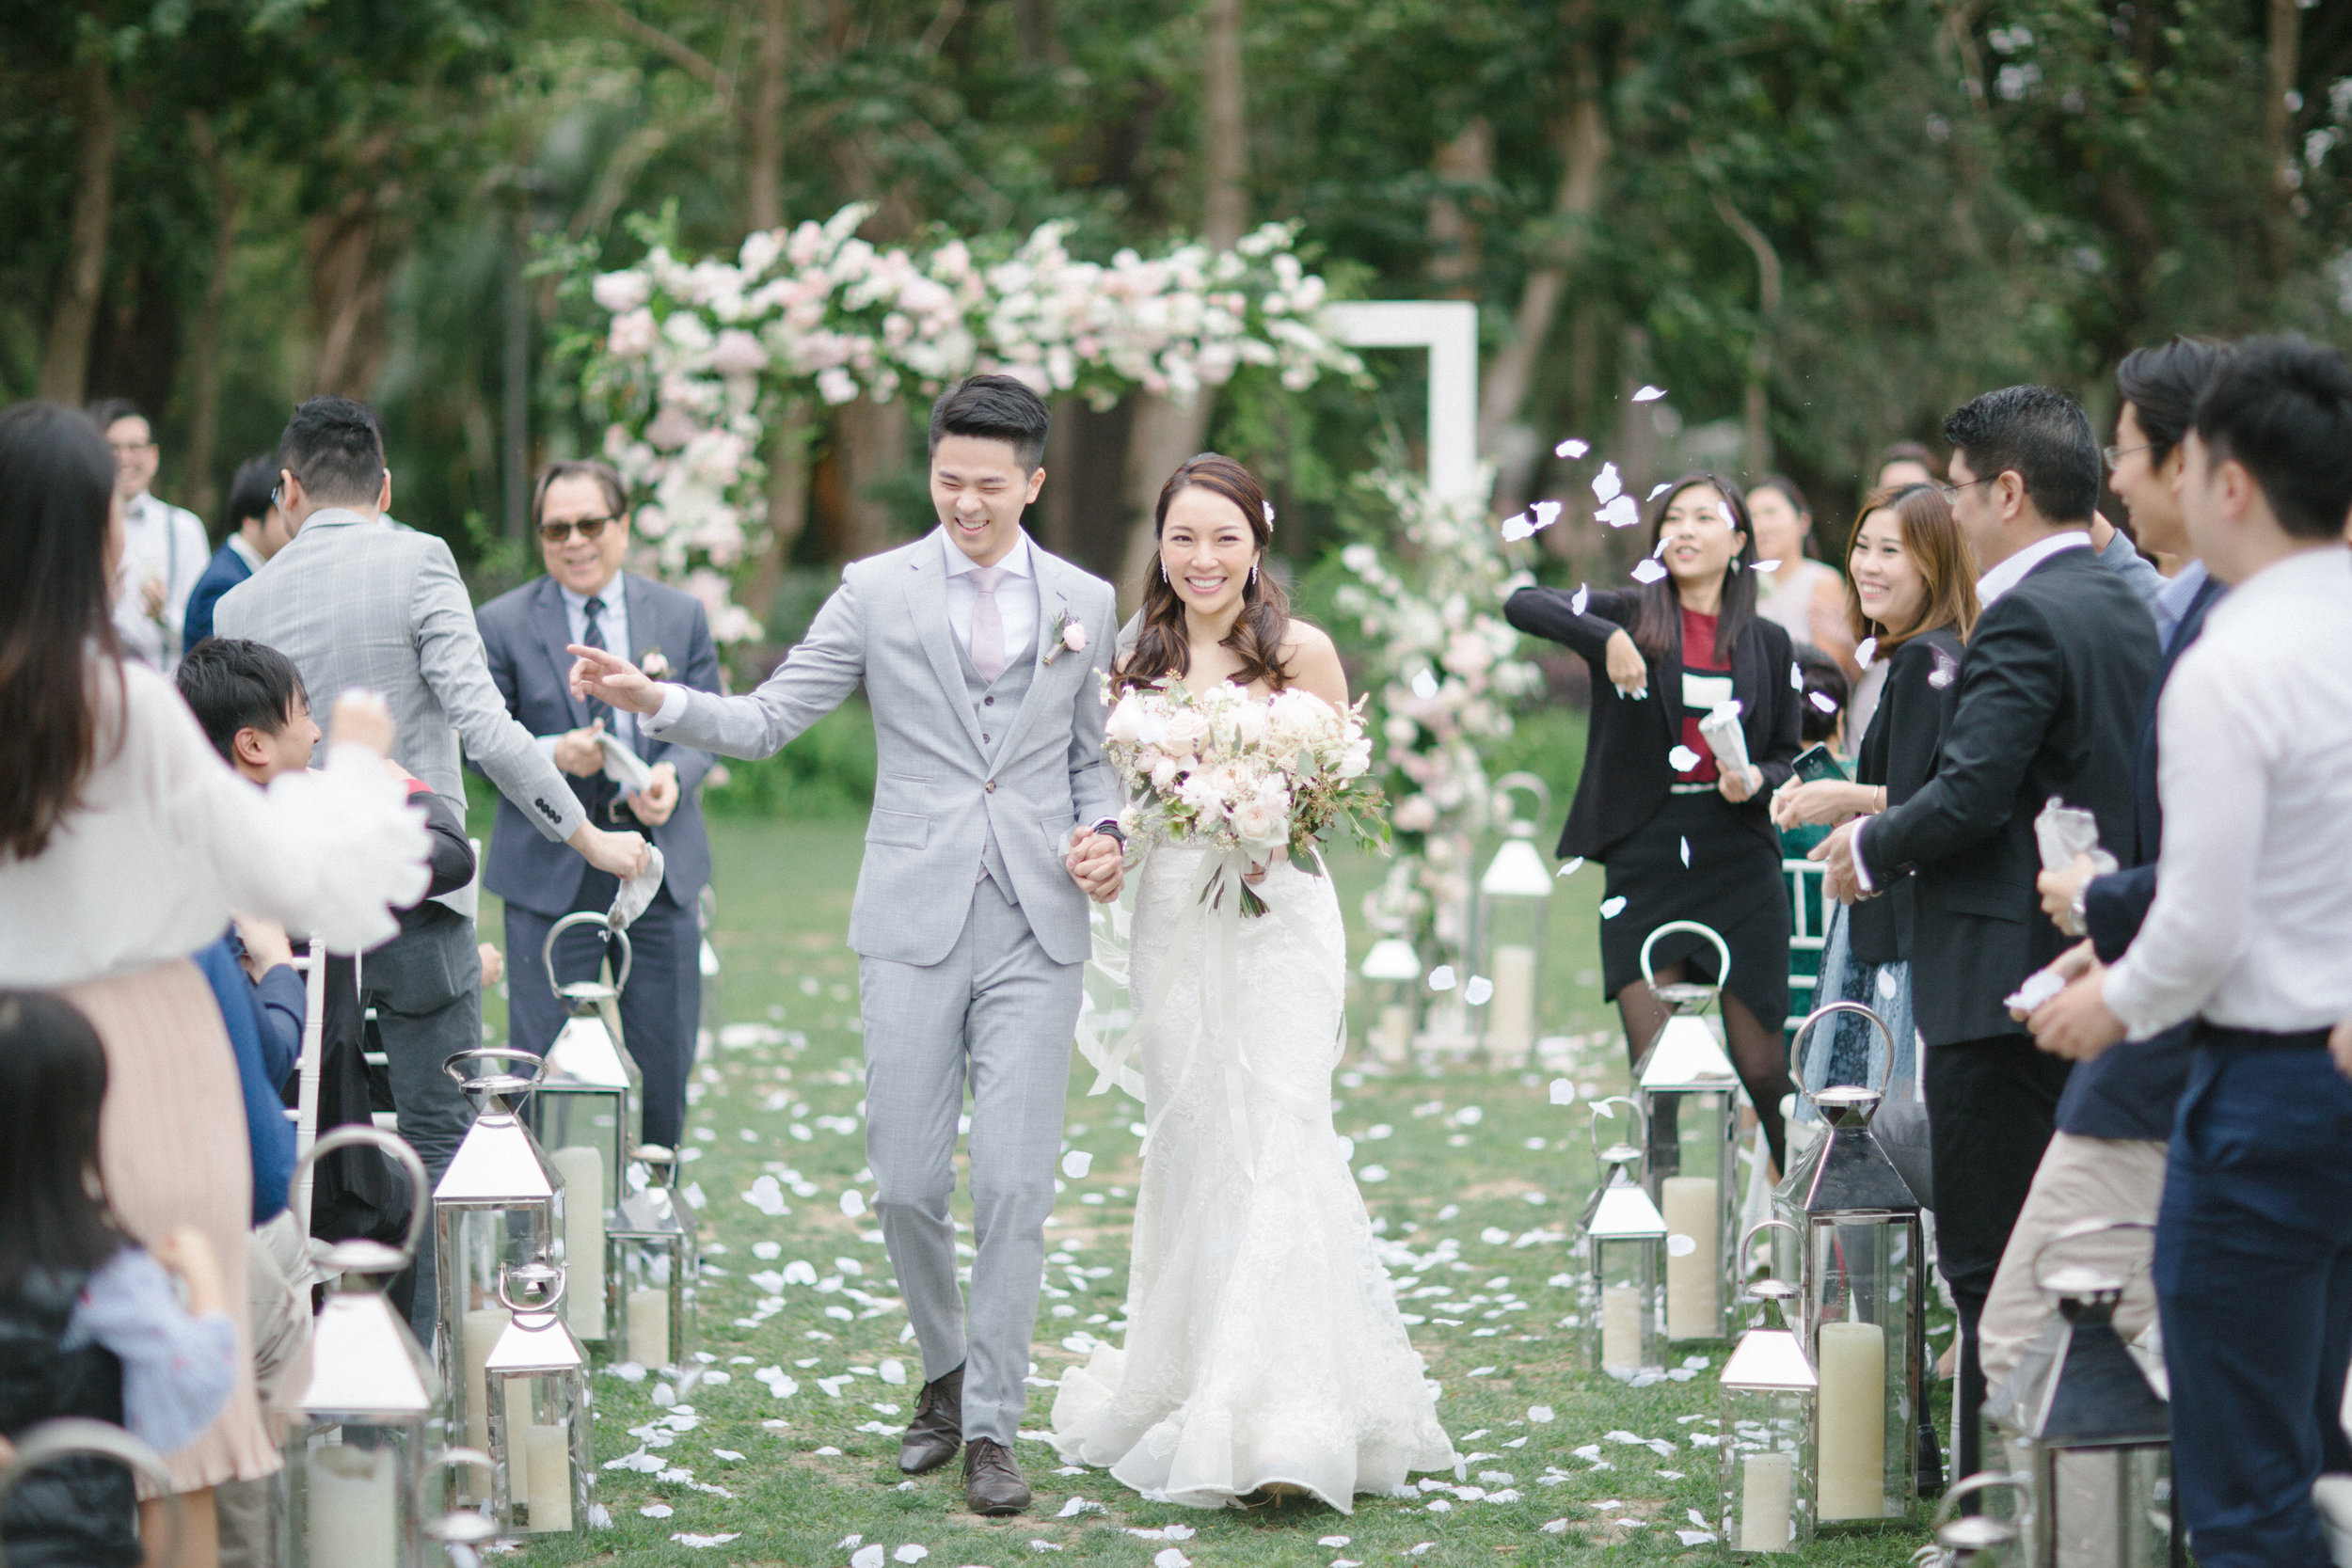 Kowloon-Tsai-Bauhinia-Garden-Wedding-Planner-Hong-Kong-Ada-Kelvin-Outdoor 1.jpg